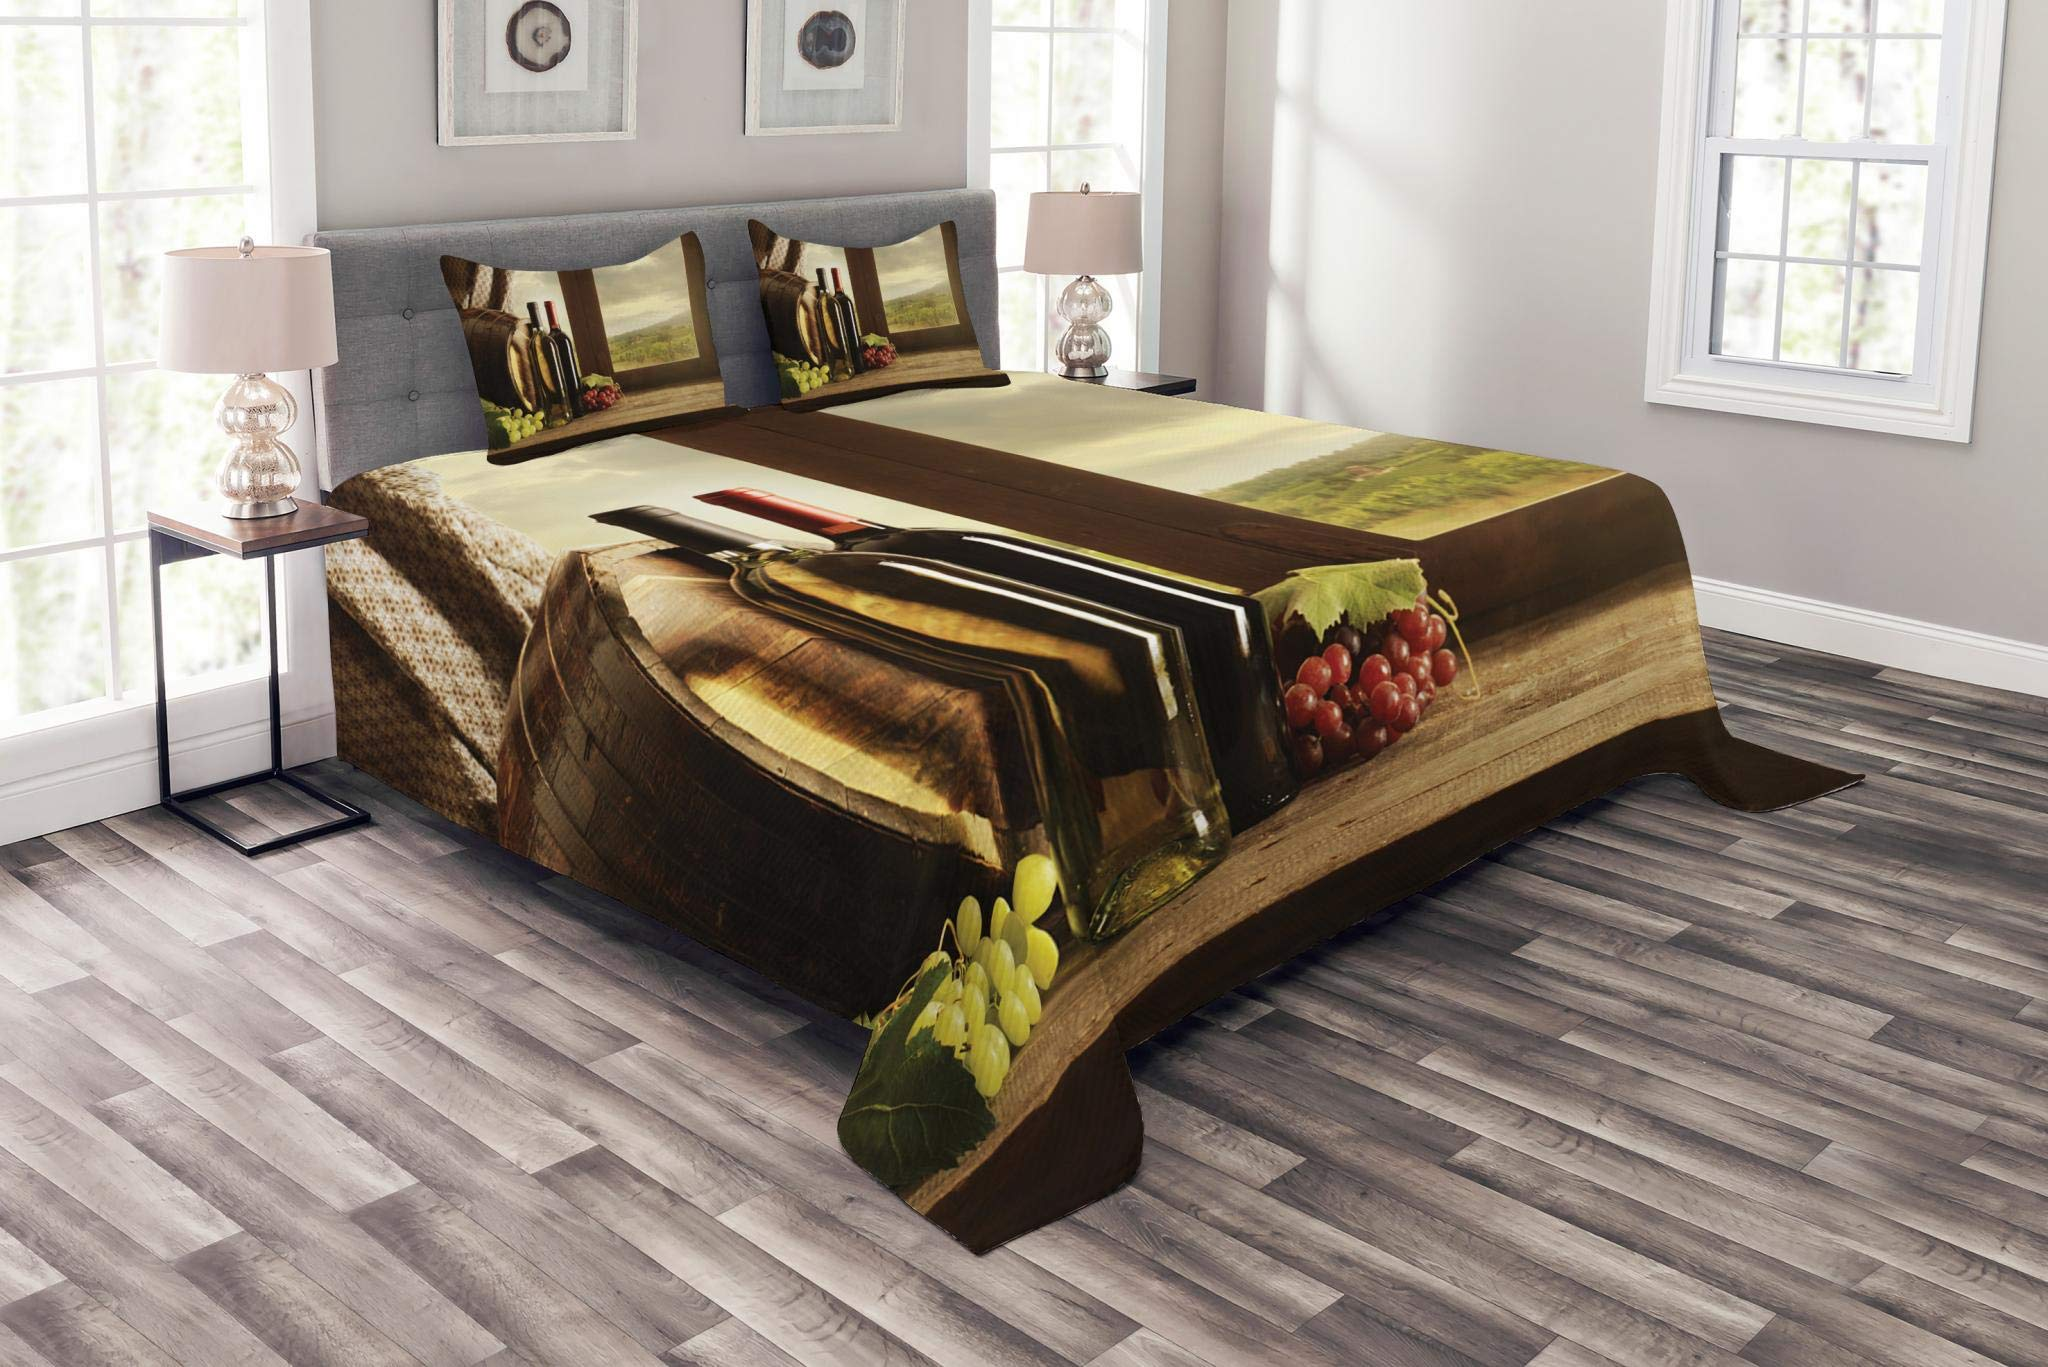 Lunarable Winery Bedspread Set Queen Size, Dark Clouds Over Vineyard Rainy Weather View from Window of Farmhouse Scenery, Decorative Quilted 3 Piece Coverlet Set with 2 Pillow Shams, Green Brown Red